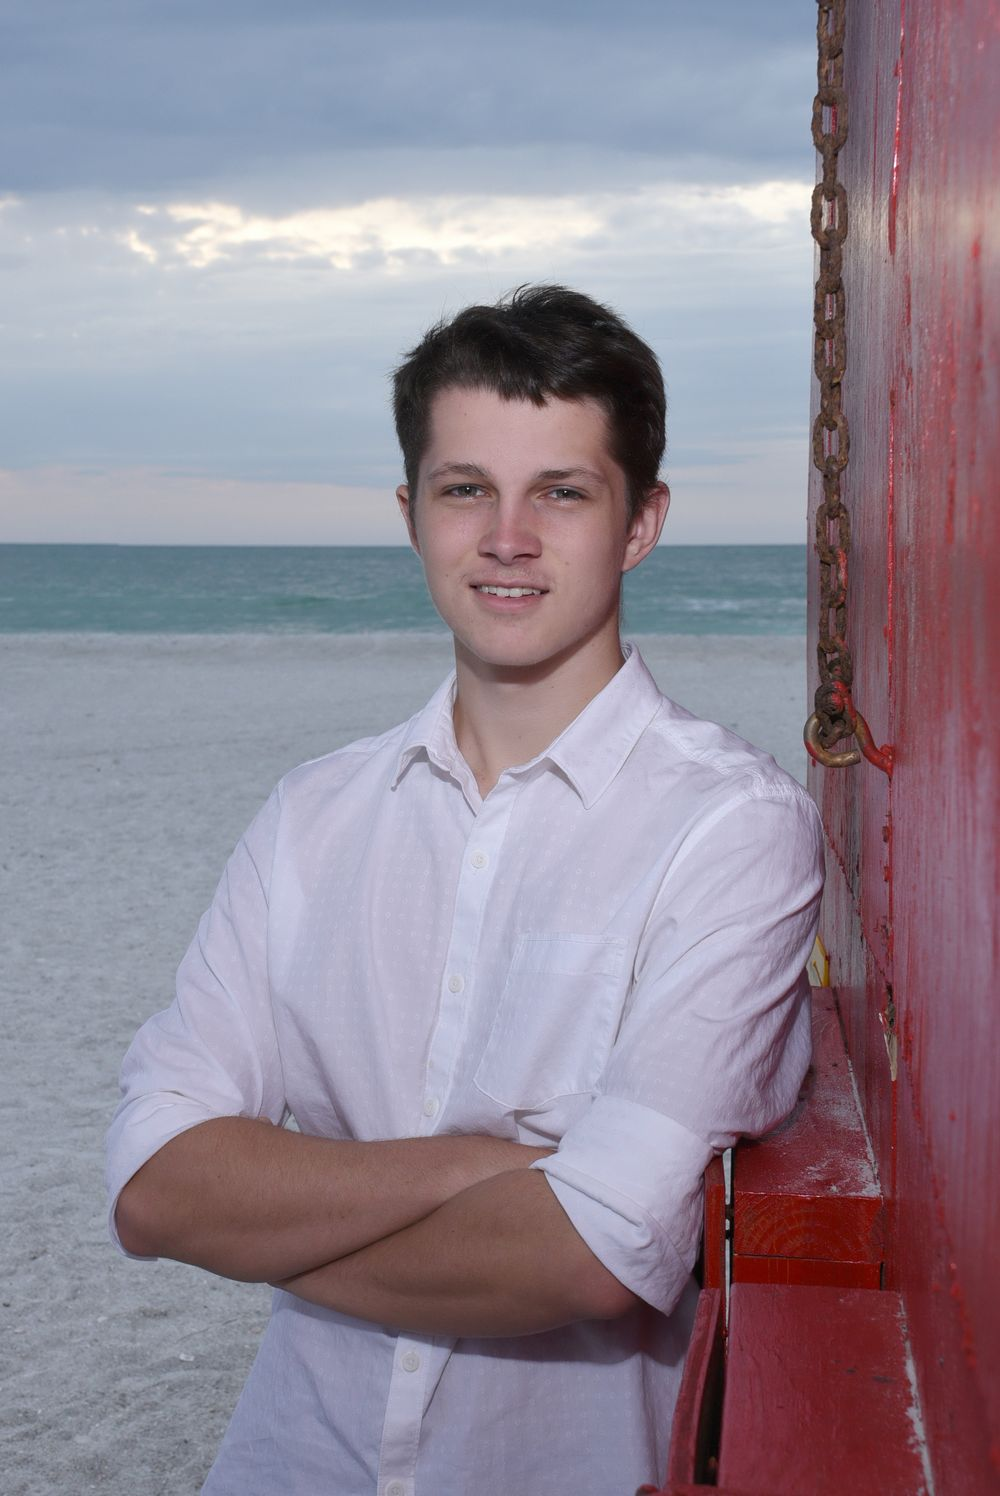 Male Senior photo Clearwater Beach, Fl by Kathleen Hall Photography